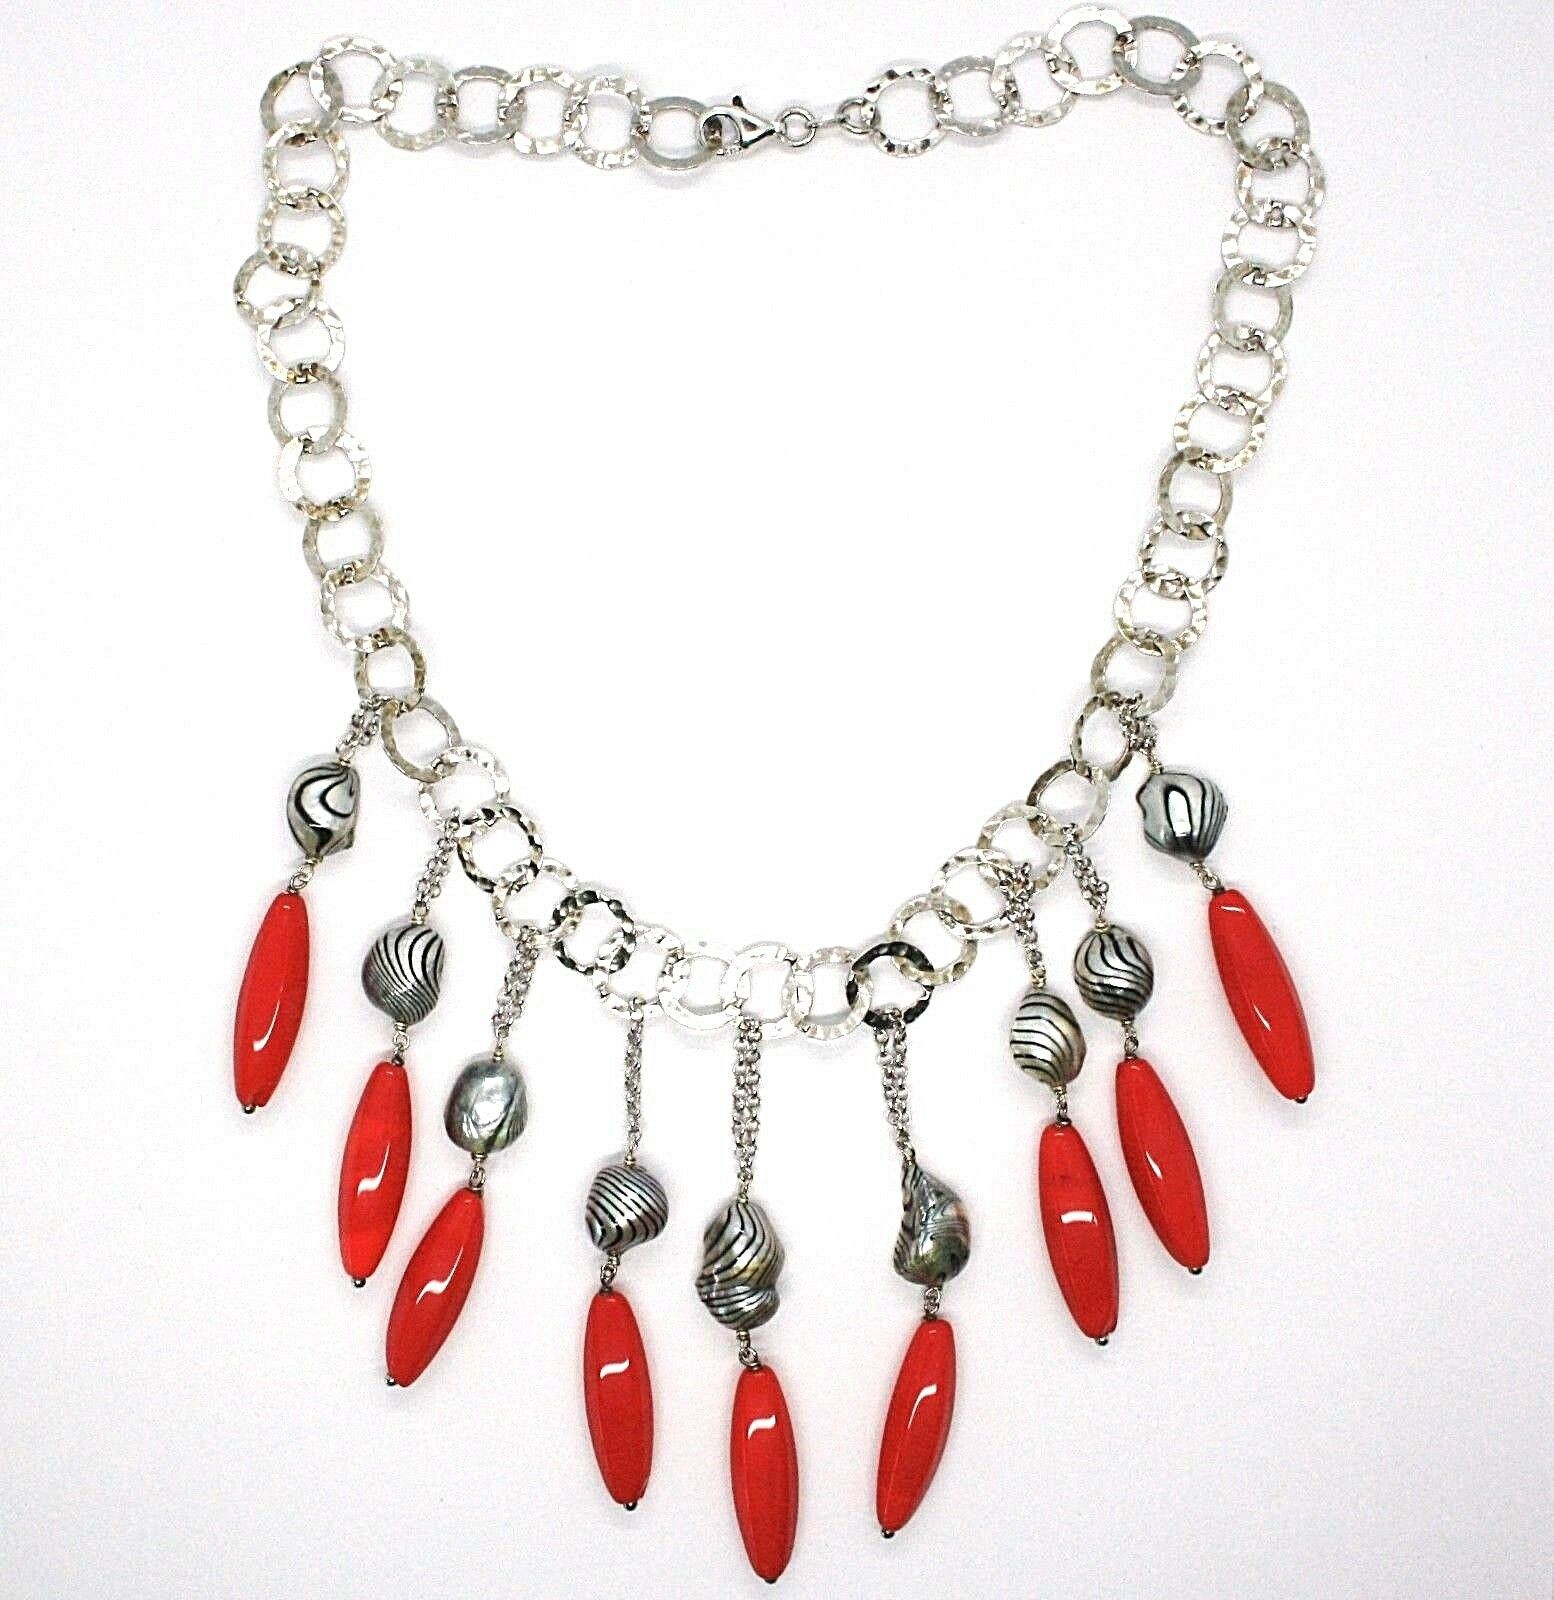 Silver 925 Necklace, Coral, Pearls Grey Painted, Waterfall, Hanging image 2